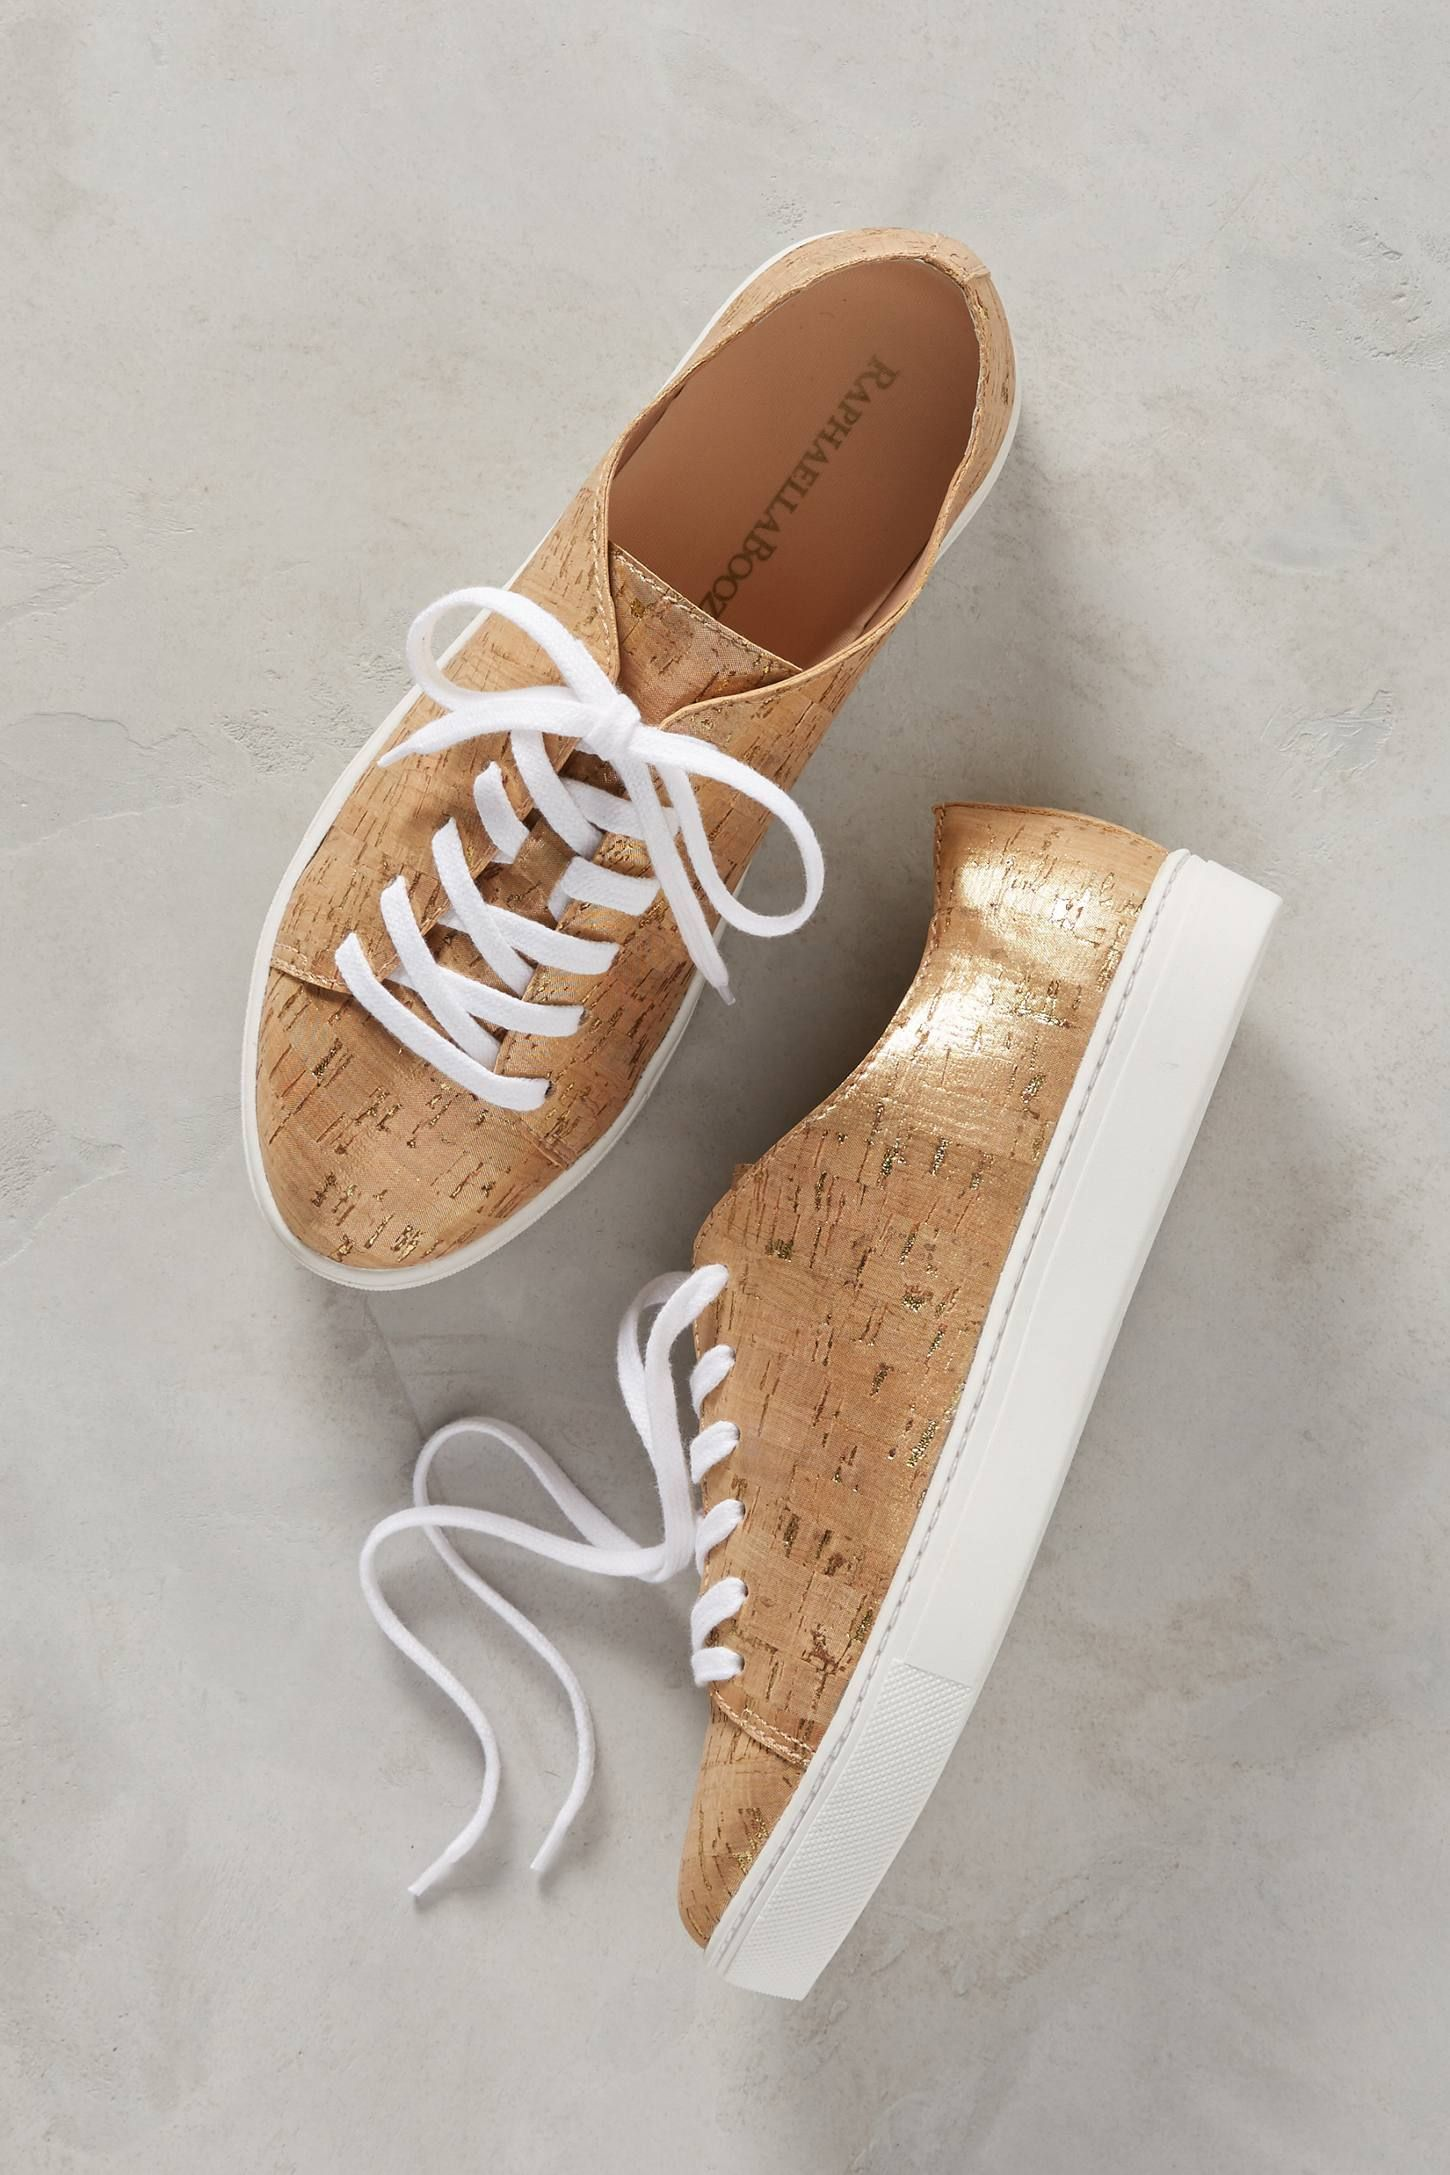 5ba7ac48d7f Shop the Raphaella Booz Metallic Cork Sneakers and more Anthropologie at  Anthropologie today. Read customer reviews